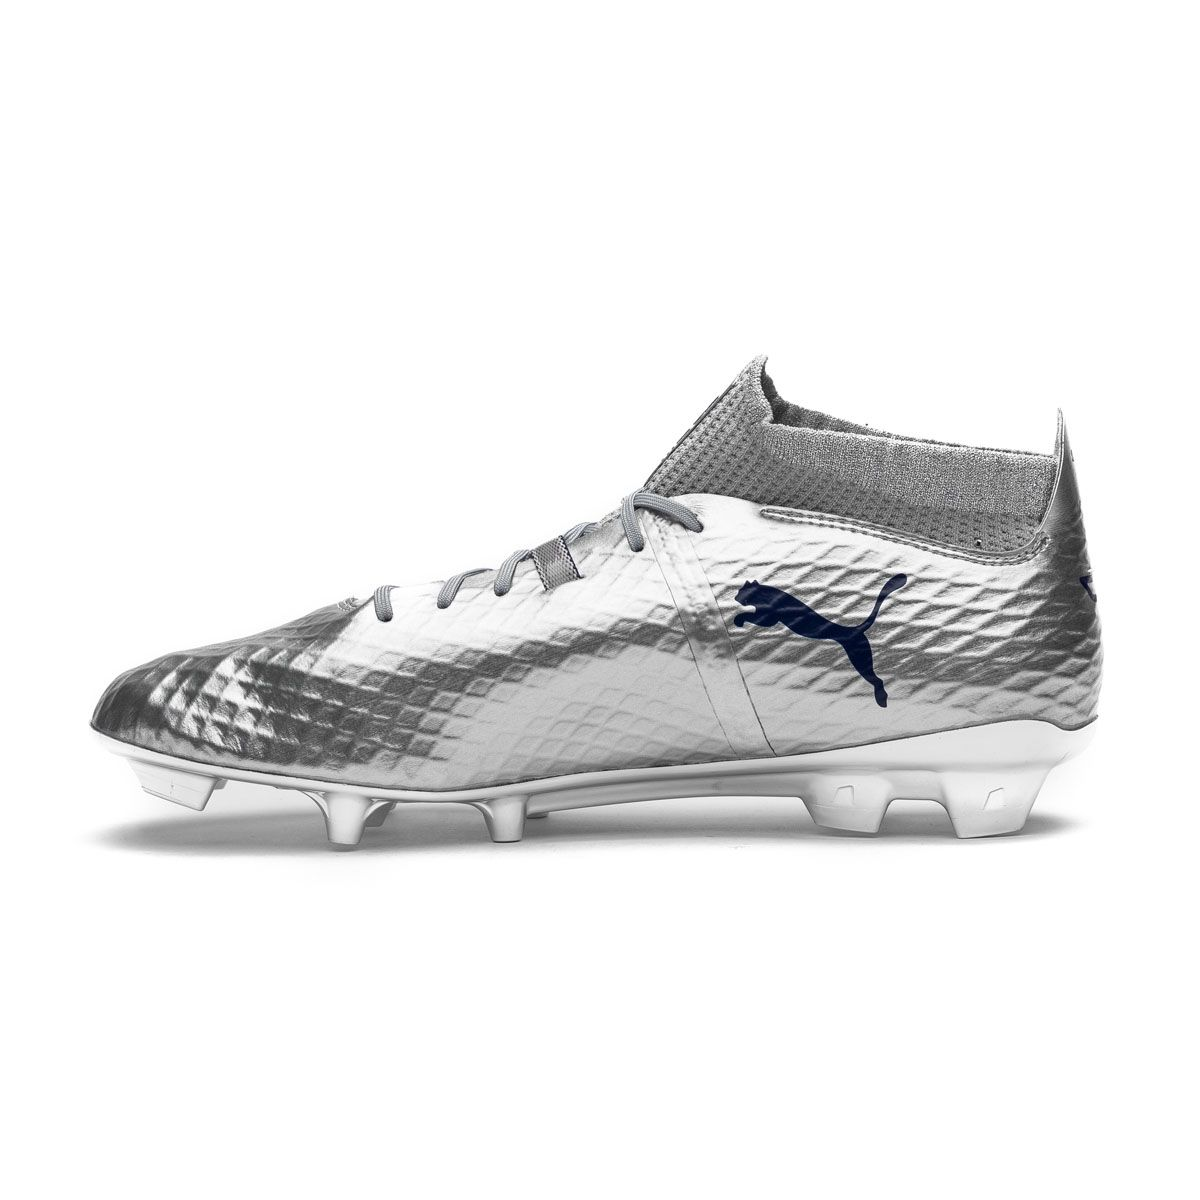 Click to enlarge image puma one chrome fg silver blue depths a.jpg · Click  to enlarge image puma one chrome fg silver blue depths b.jpg ... 5736325c46